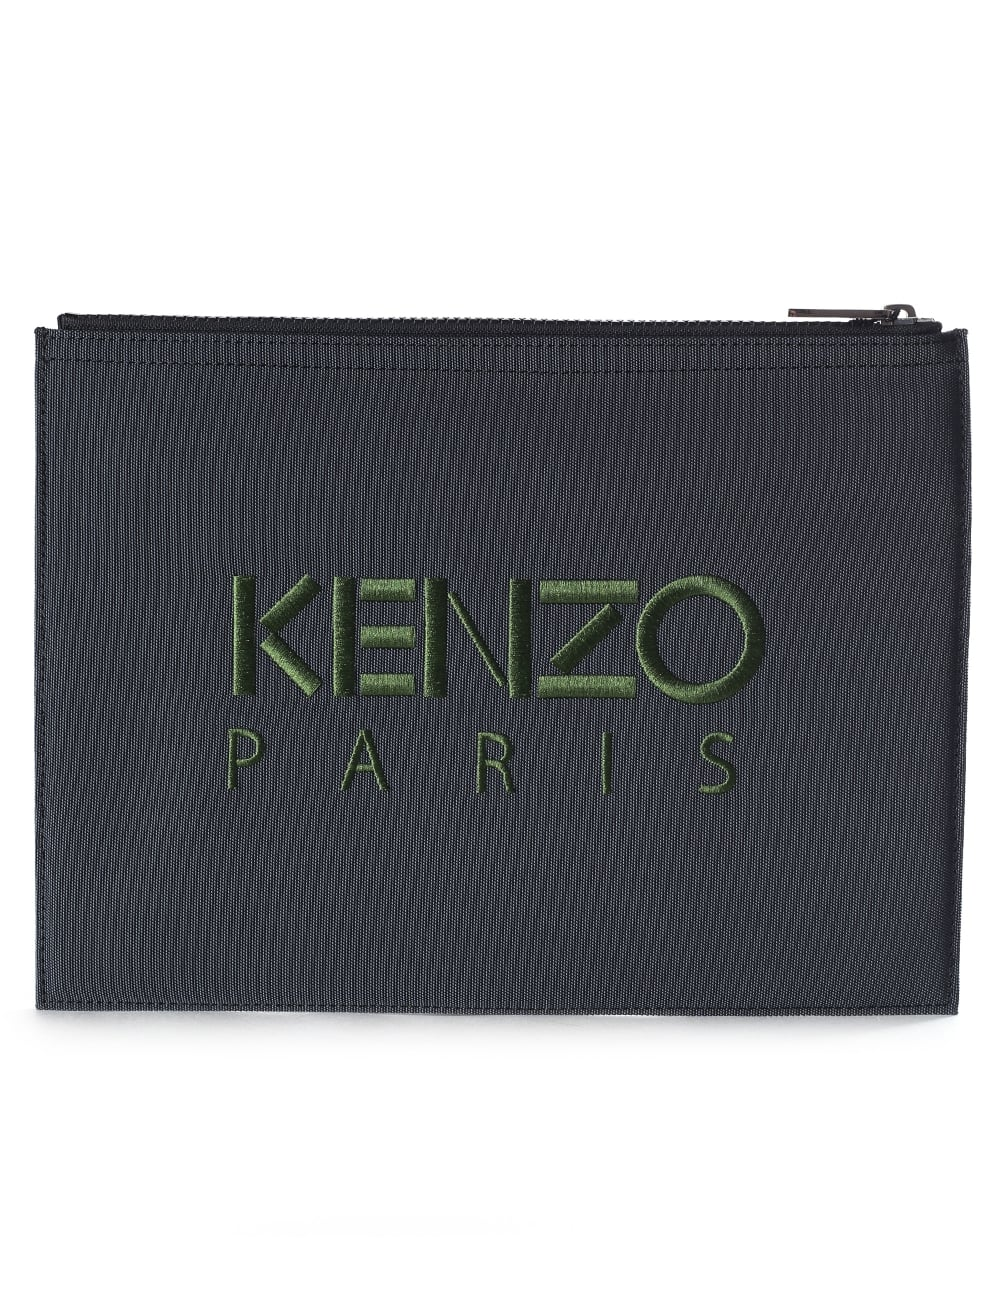 dccf532c2bf Kenzo A4 Men's Embroidered Tiger Clutch Dark Grey